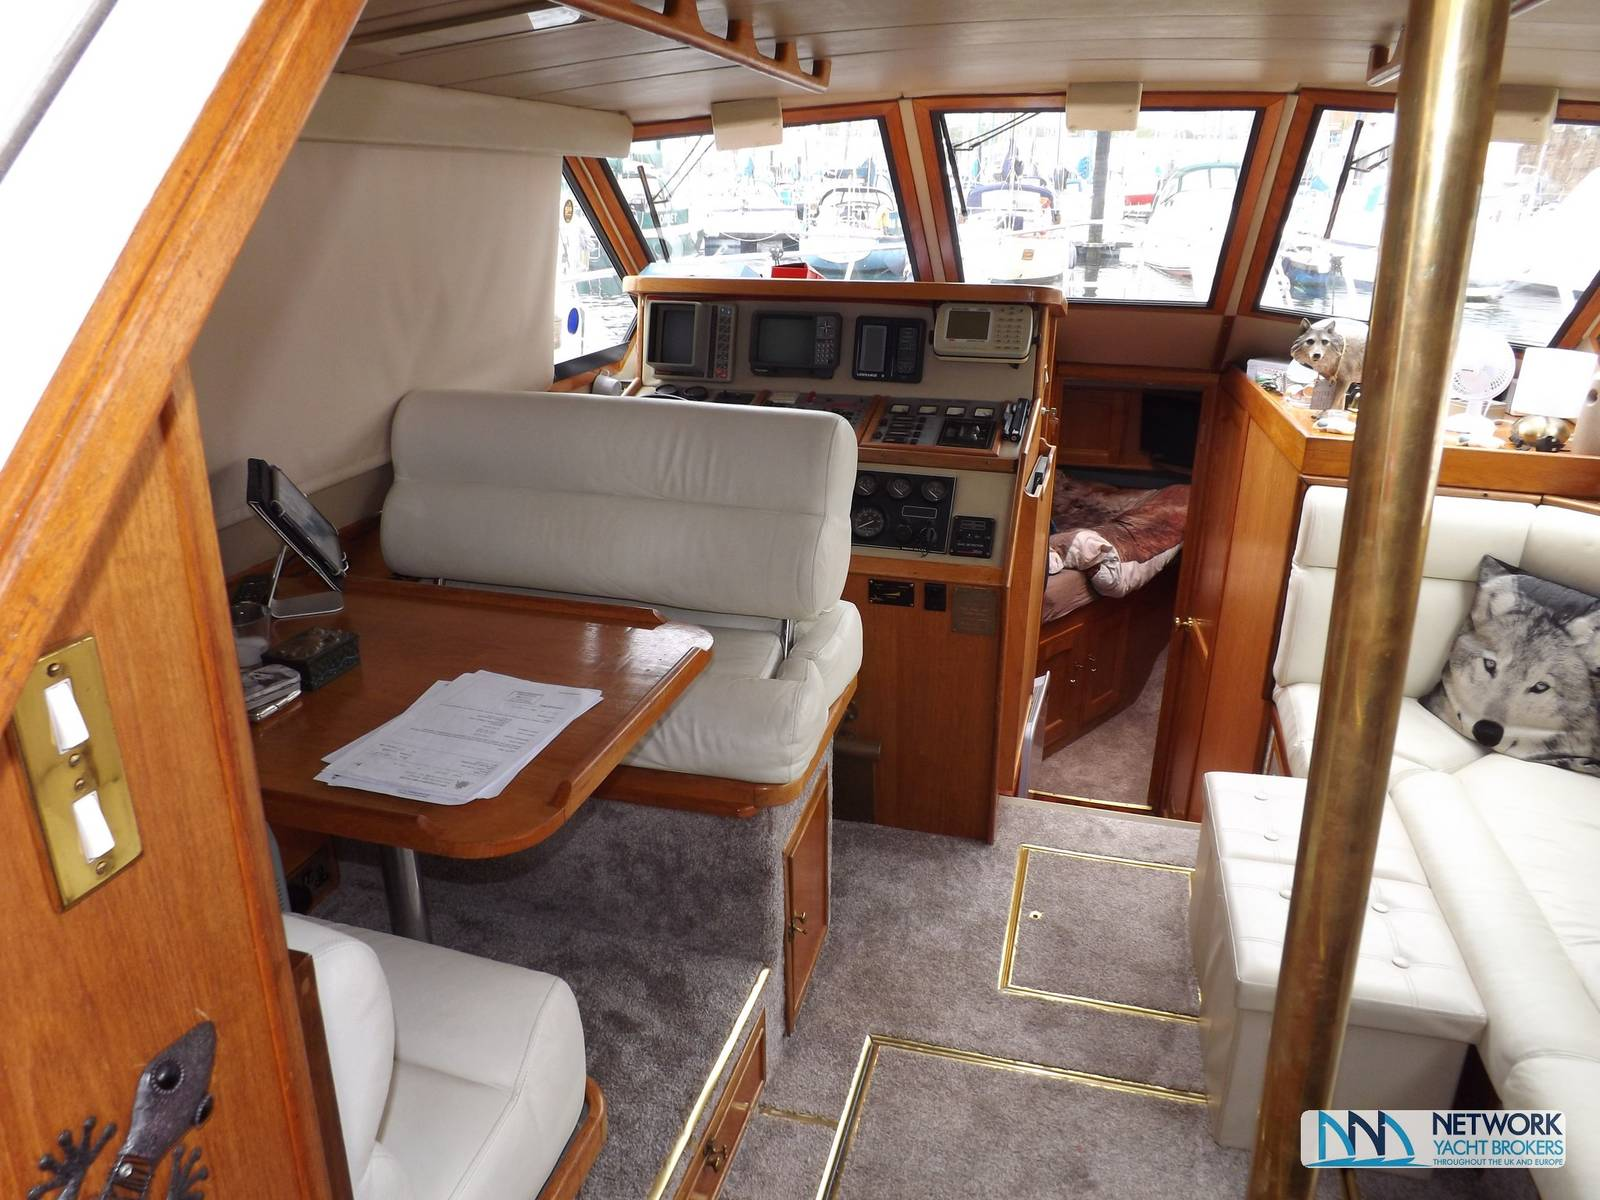 Colvic Sterling 35 - Network Yacht Brokers Milford Haven Pembrokeshire SA73 3AX 01646 278270 Yachts.co Milford Haven Pembrokeshire SA73 3AX 01646 278270